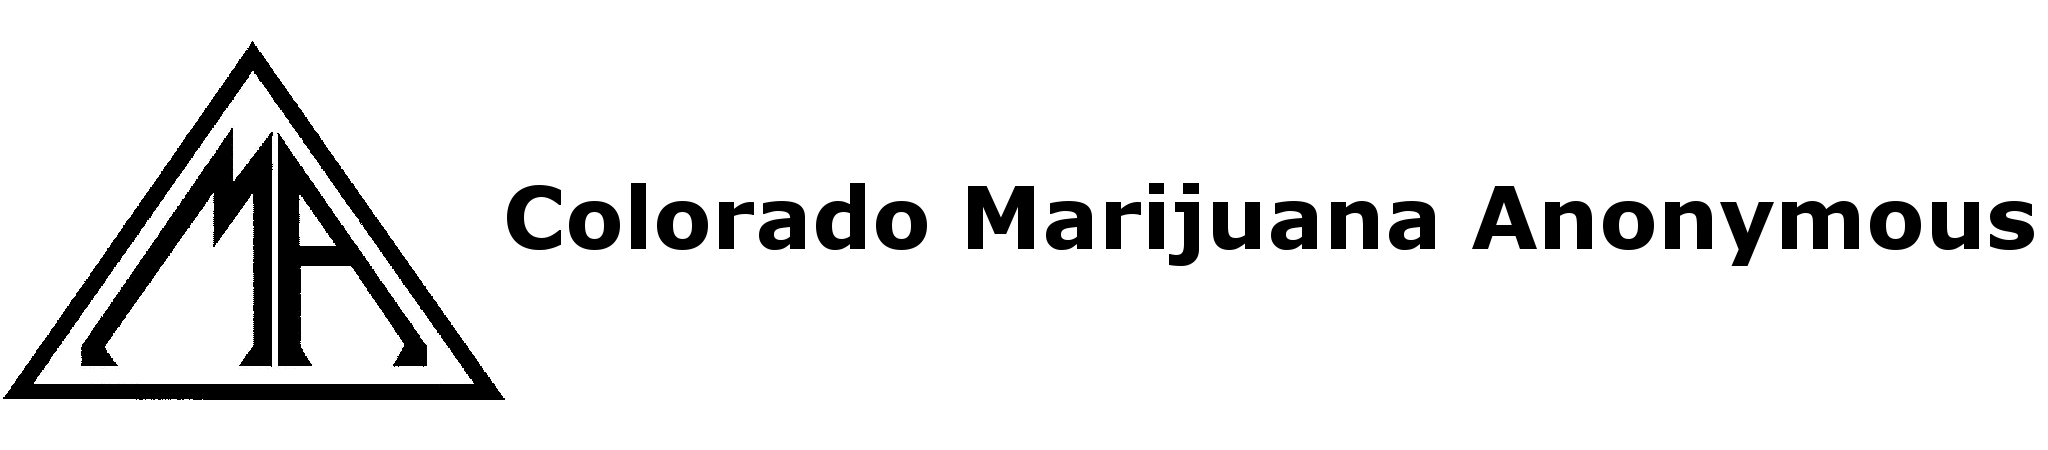 Colorado Marijuana Anonymous